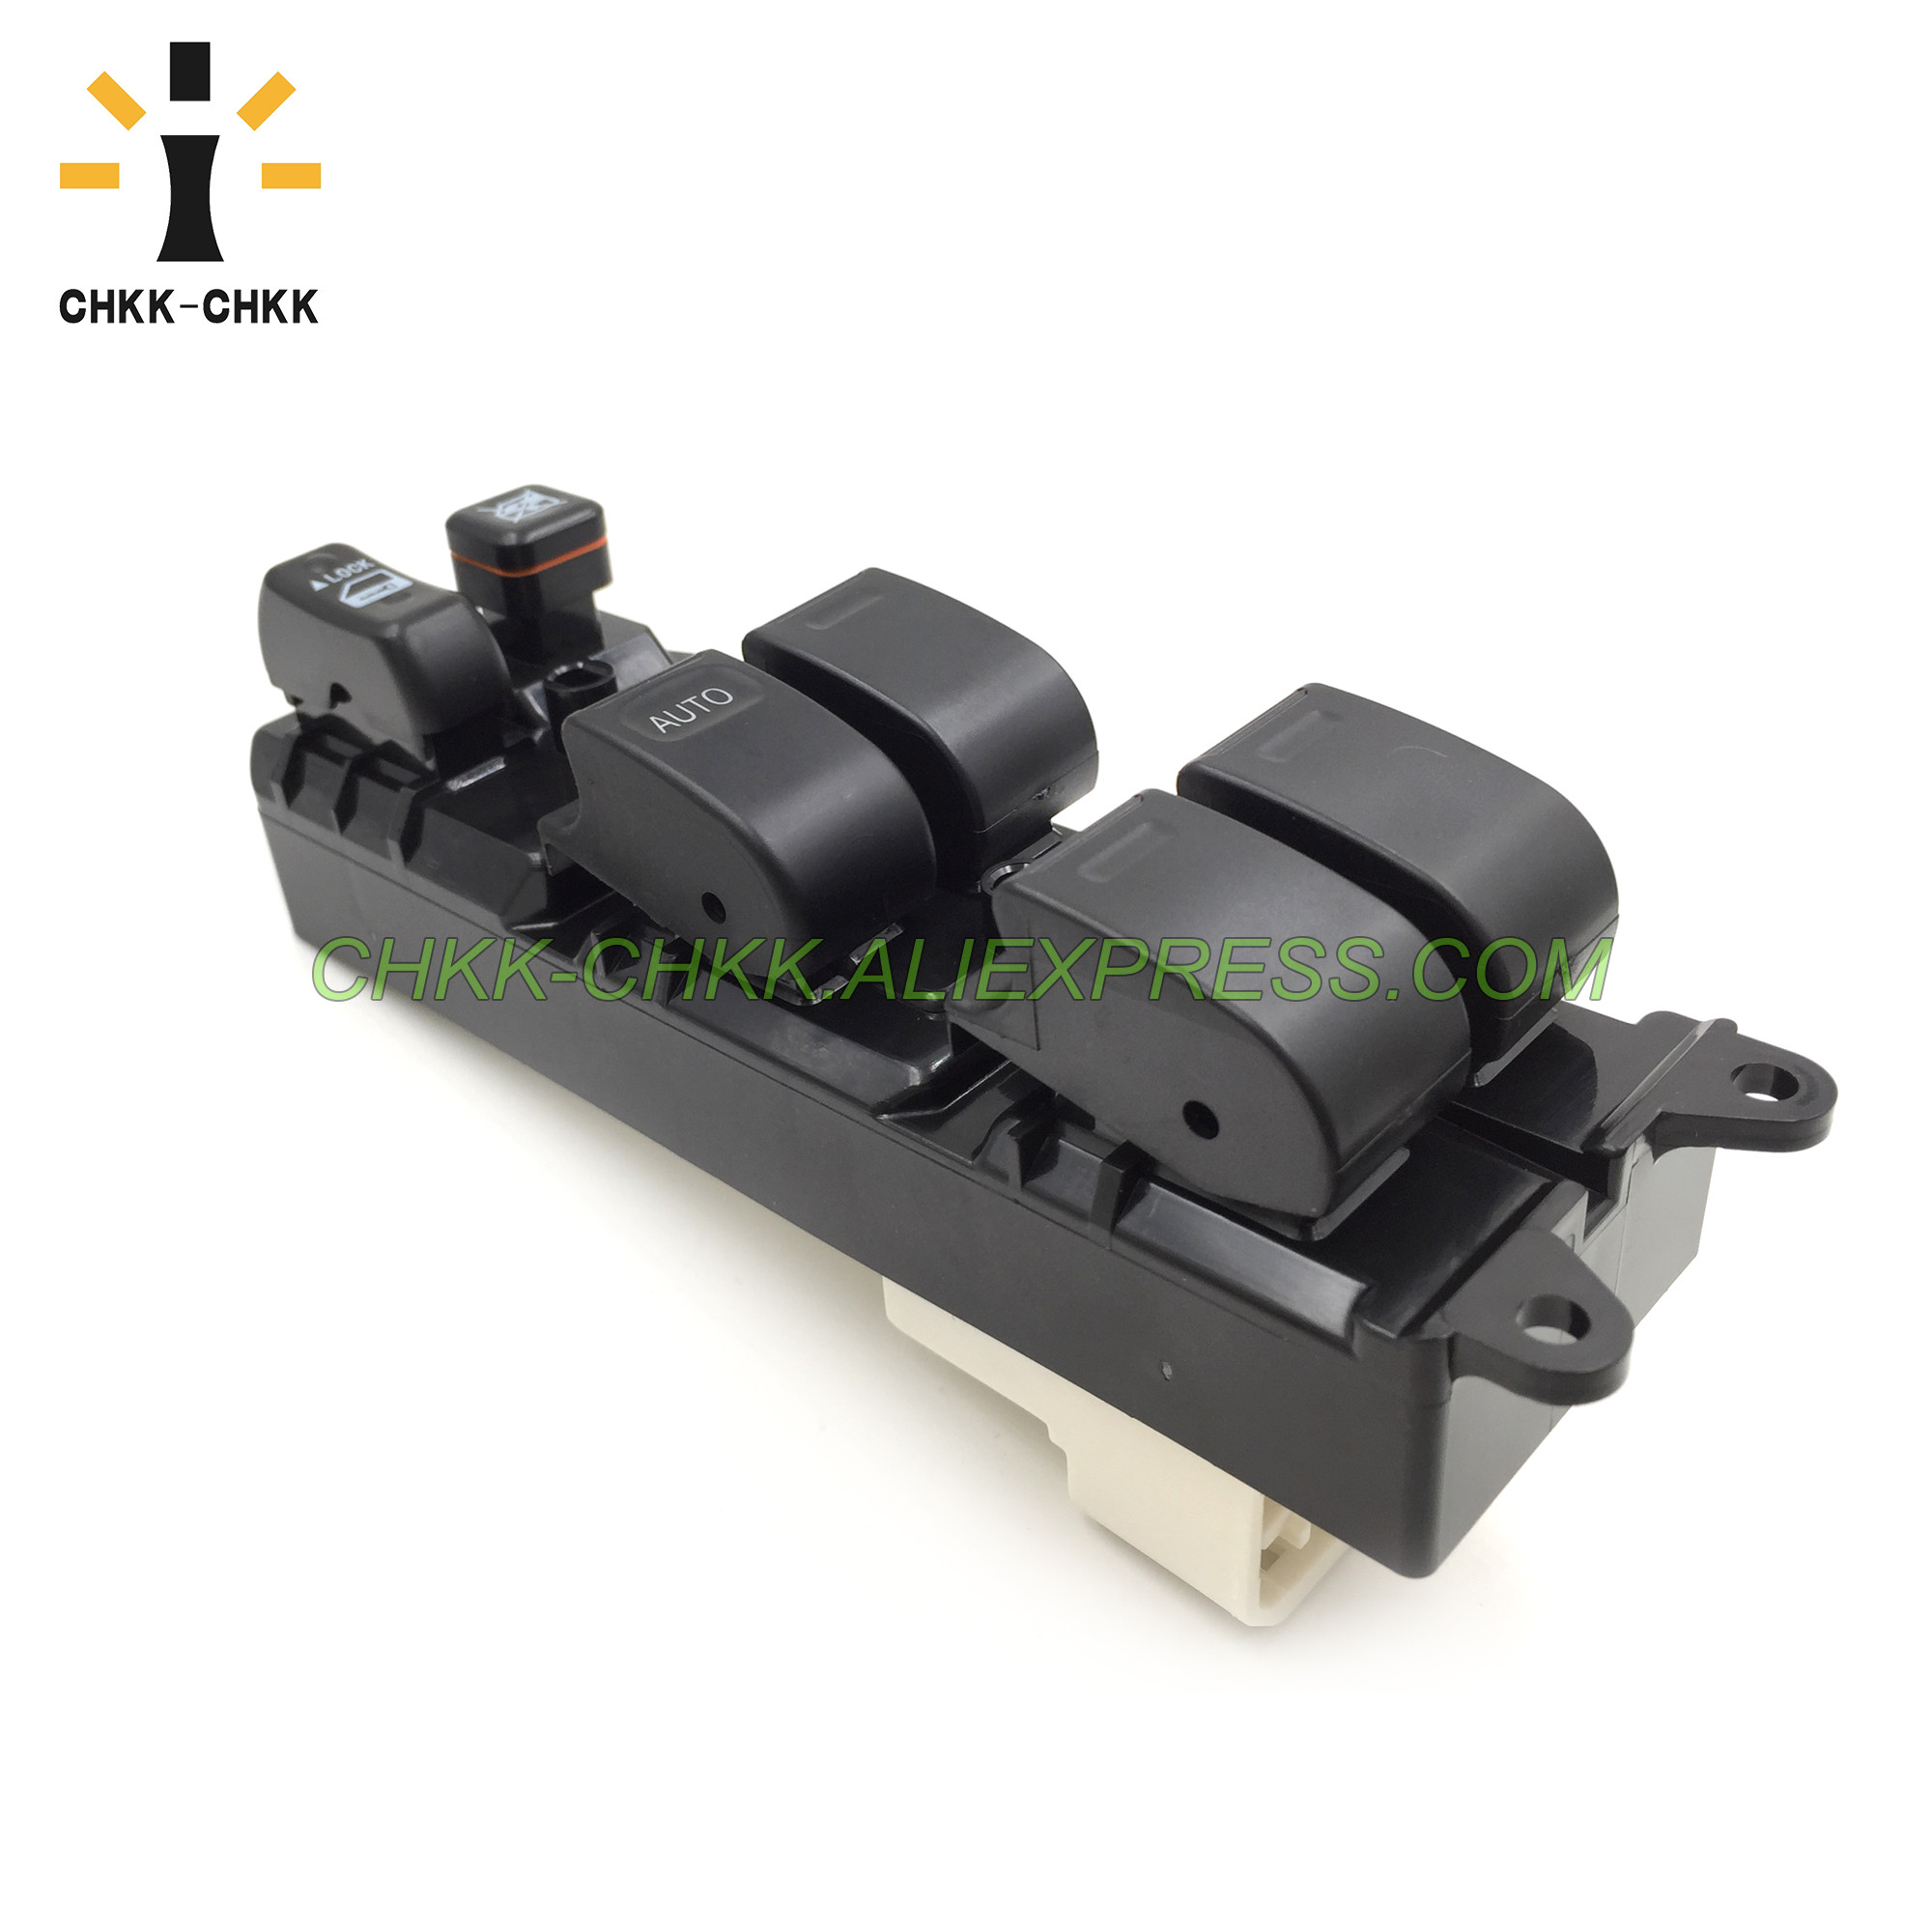 CHKK-CHKK 84820-33180 Master Power Window Switch for Toyota Camry 02-05 2.4L 3.0L 8482033180